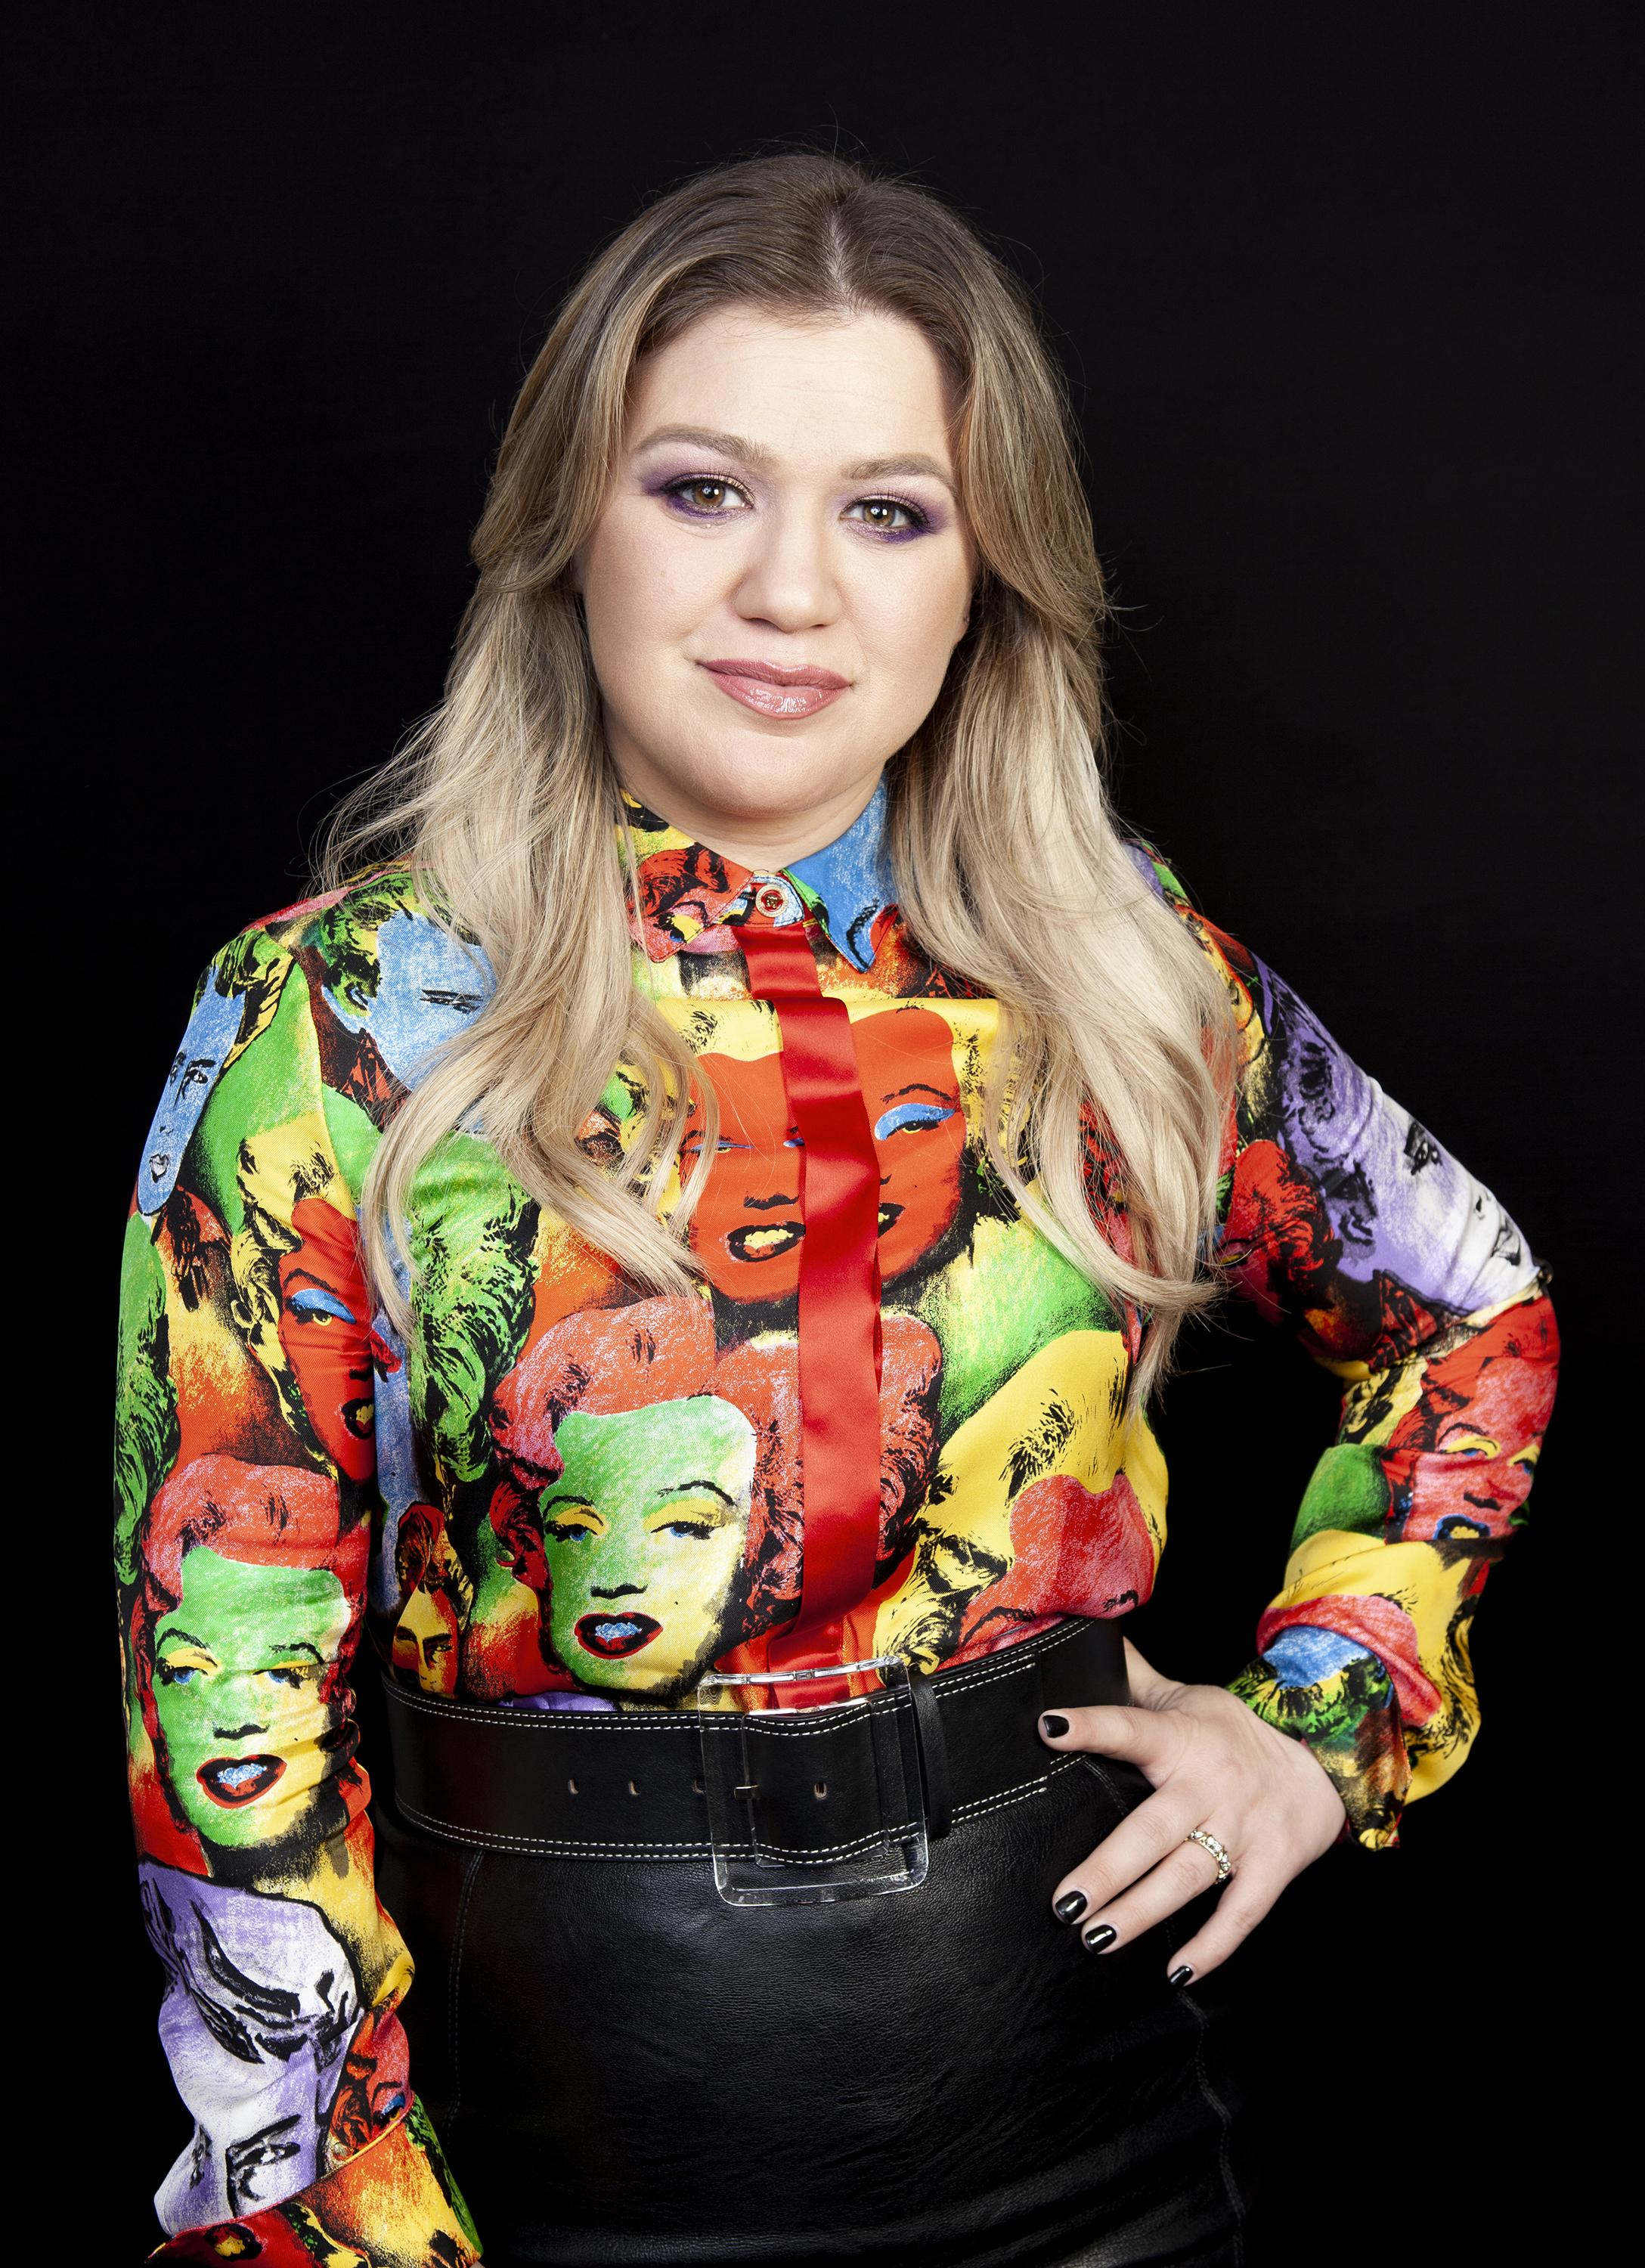 Kelly Clarkson had appendix removed after hosting awards